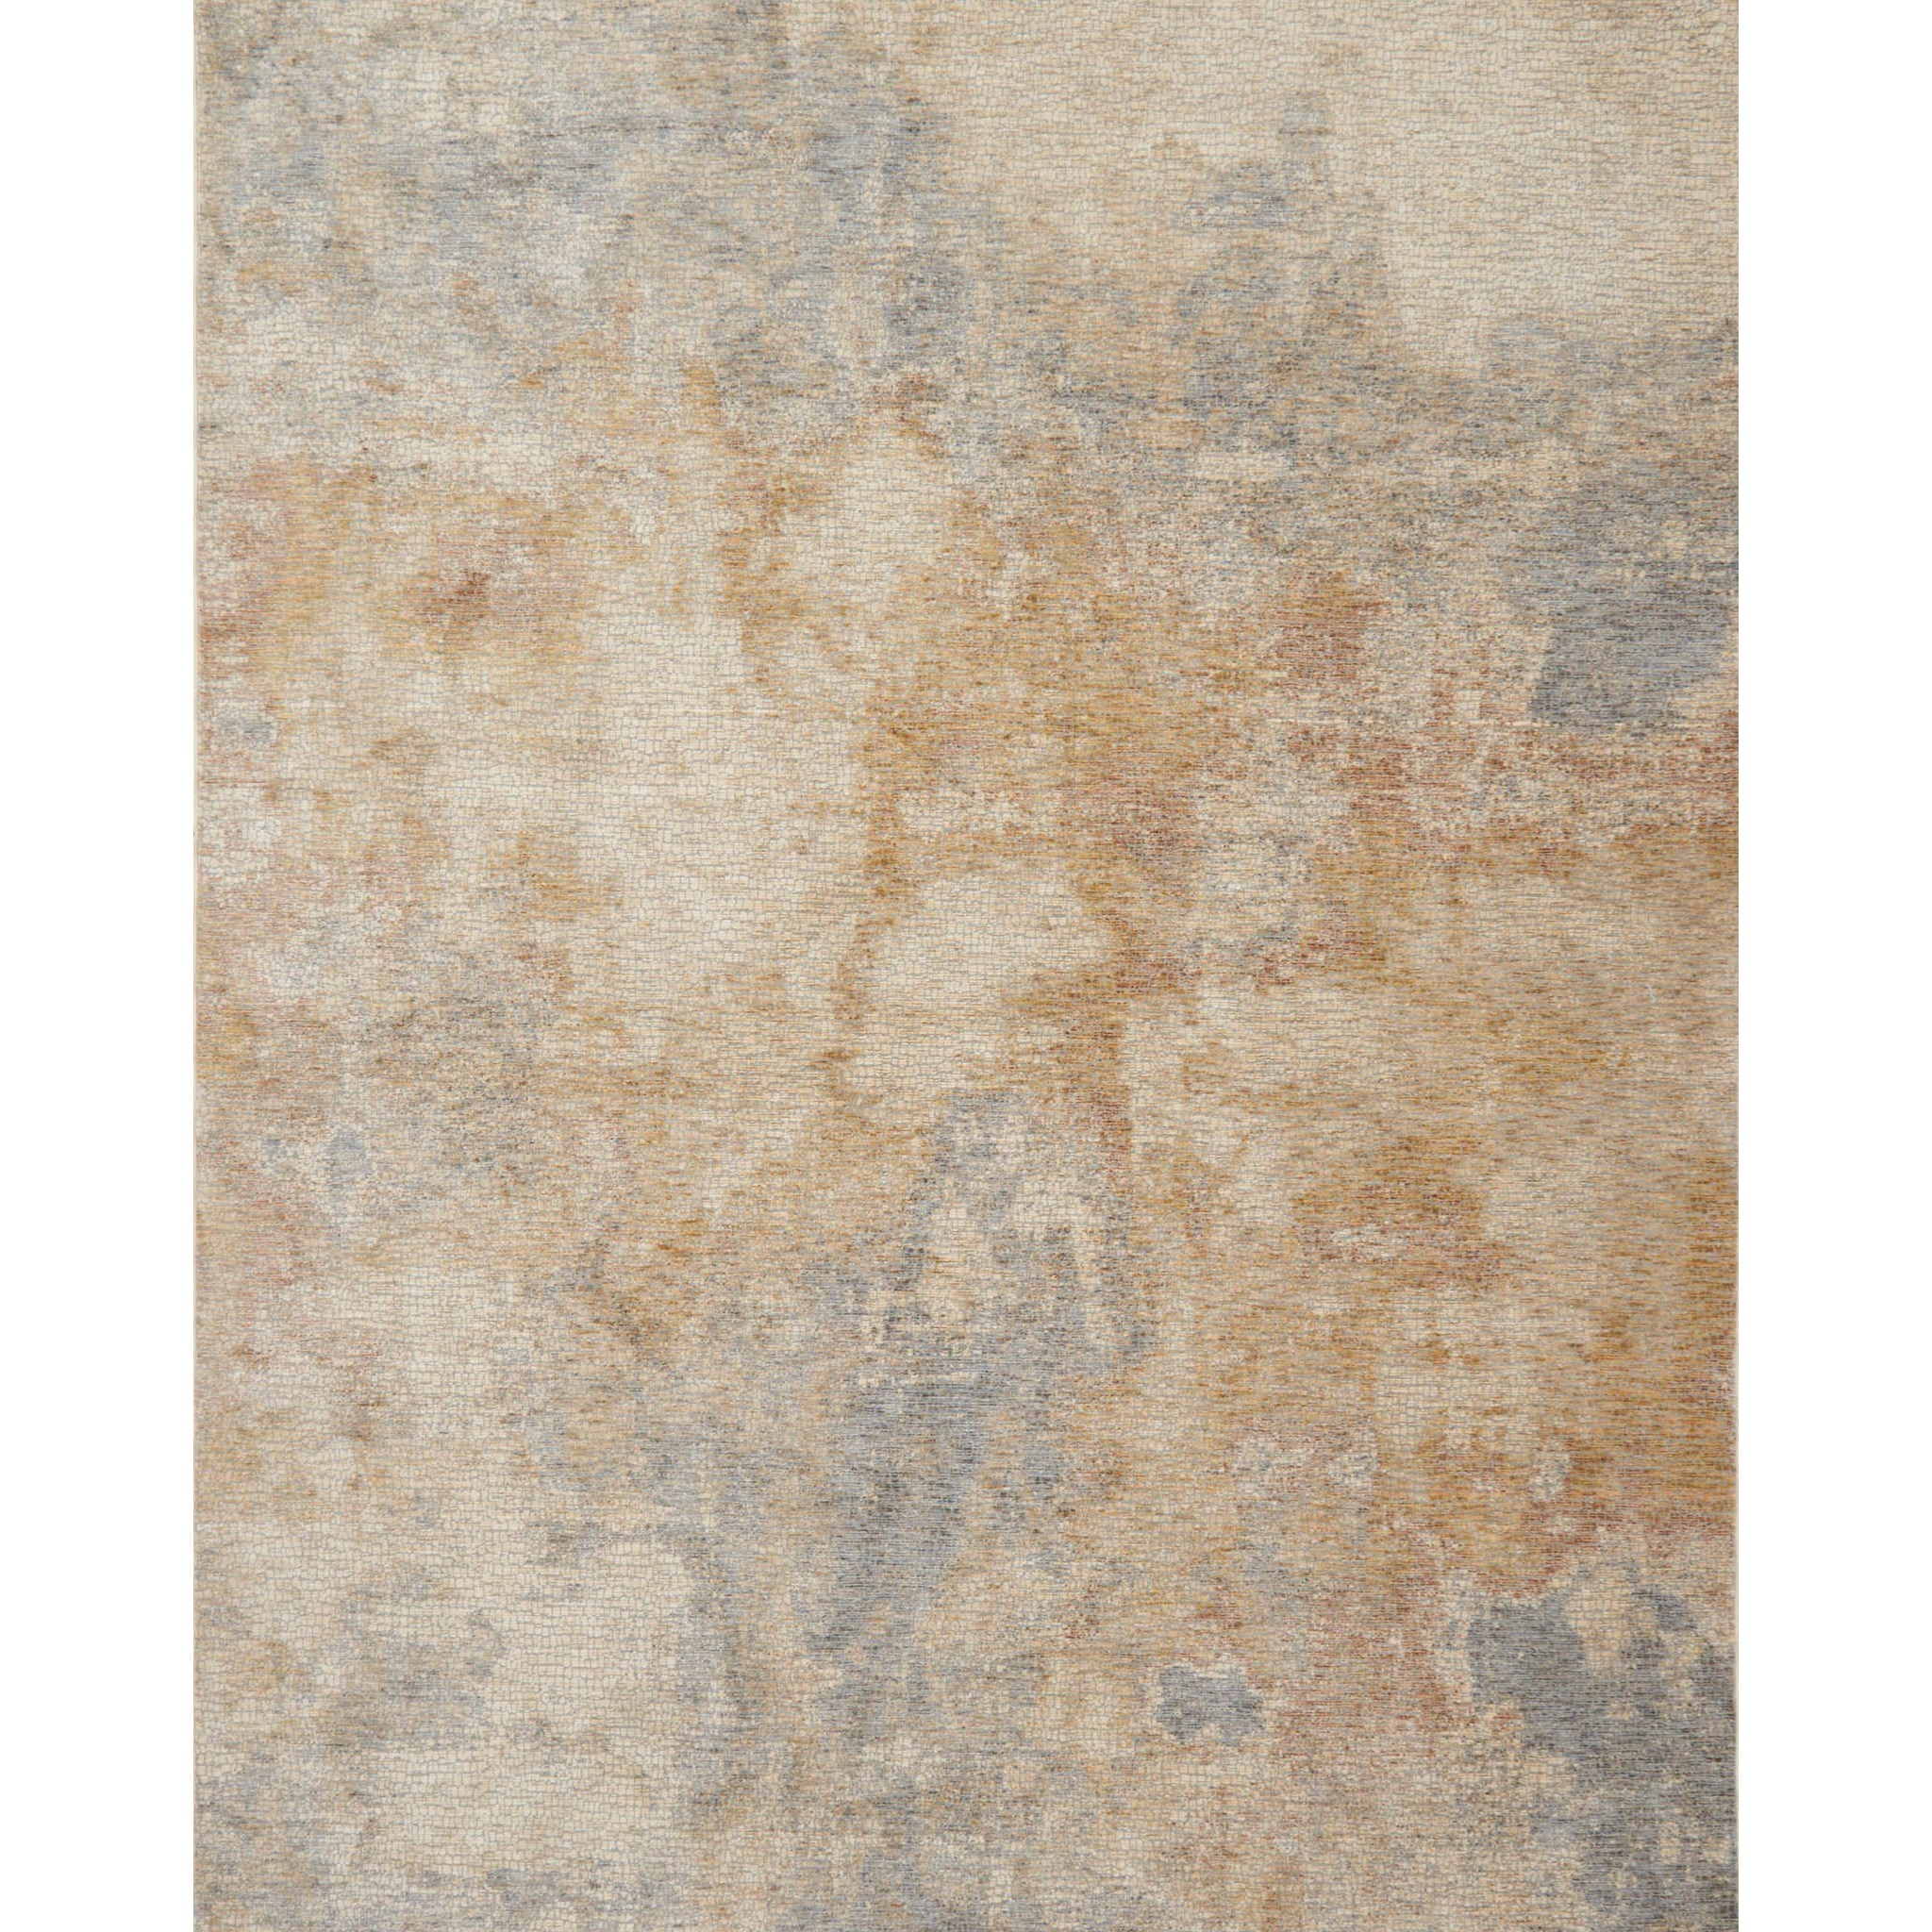 """Porcia 2'-8"""" X 12' Runner by Loloi Rugs at Sprintz Furniture"""